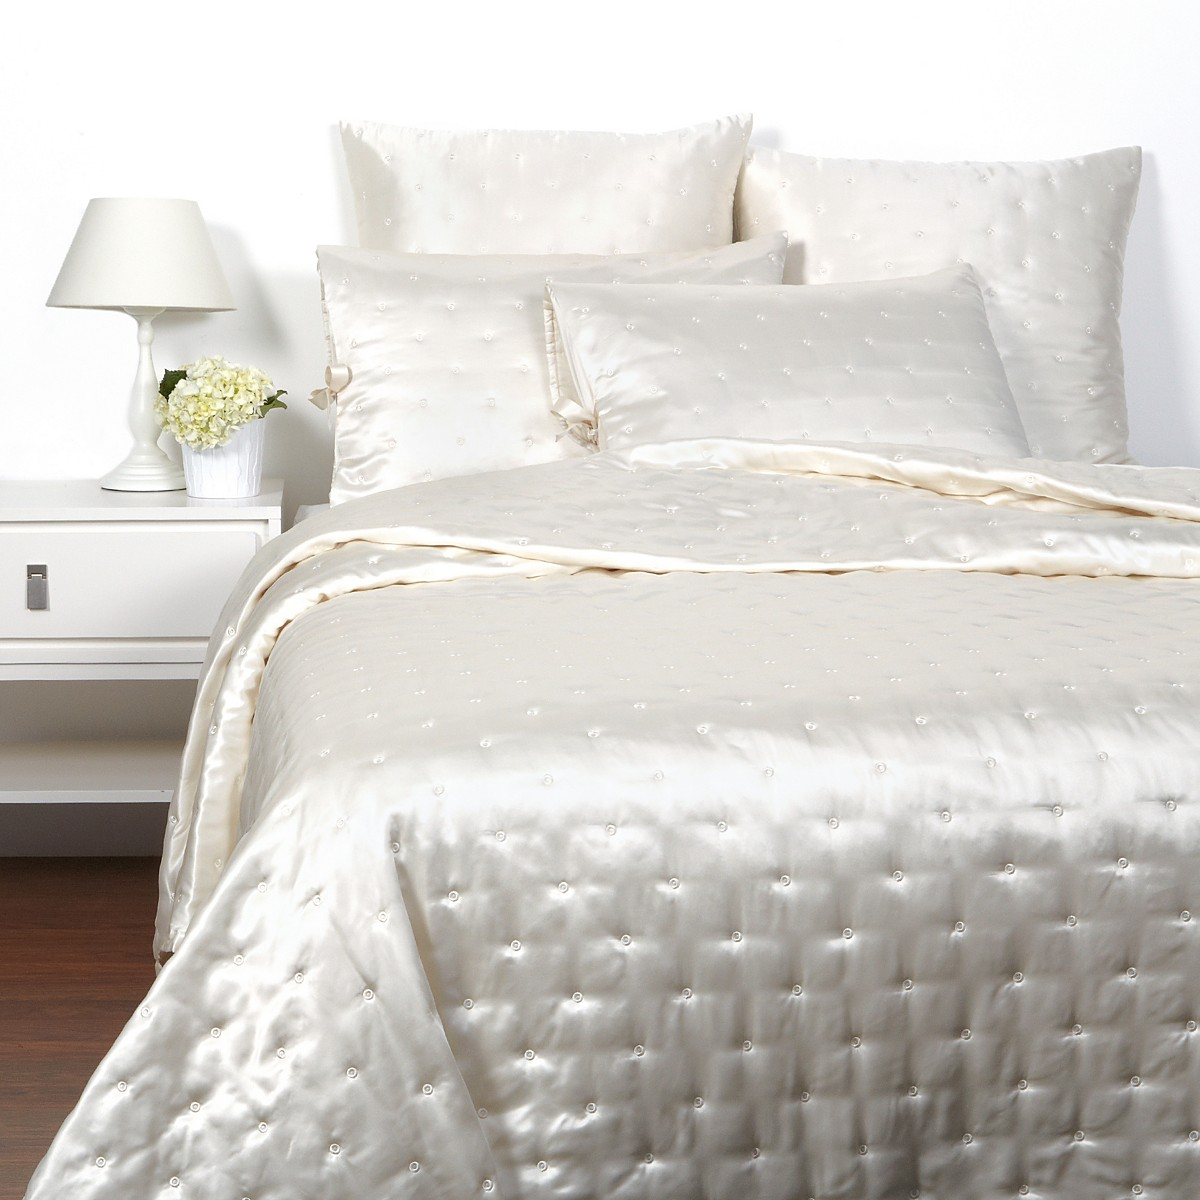 Which Fabric Of Bedsheet Is Considered Best For Use?